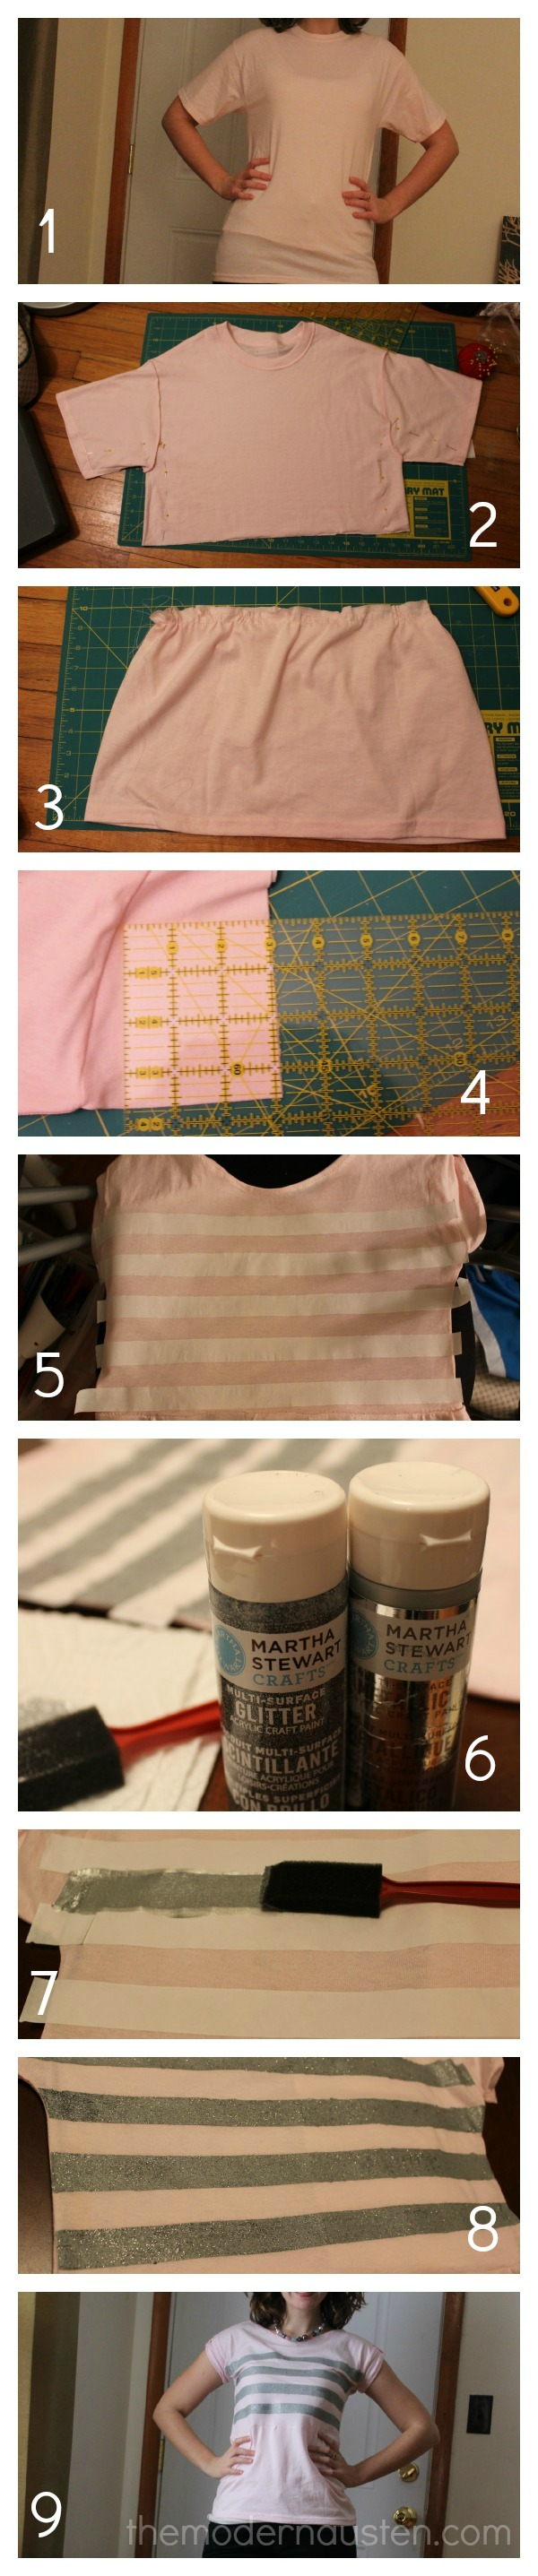 Steps to Refashioning a T-Shirt into a Striped Peplum Top